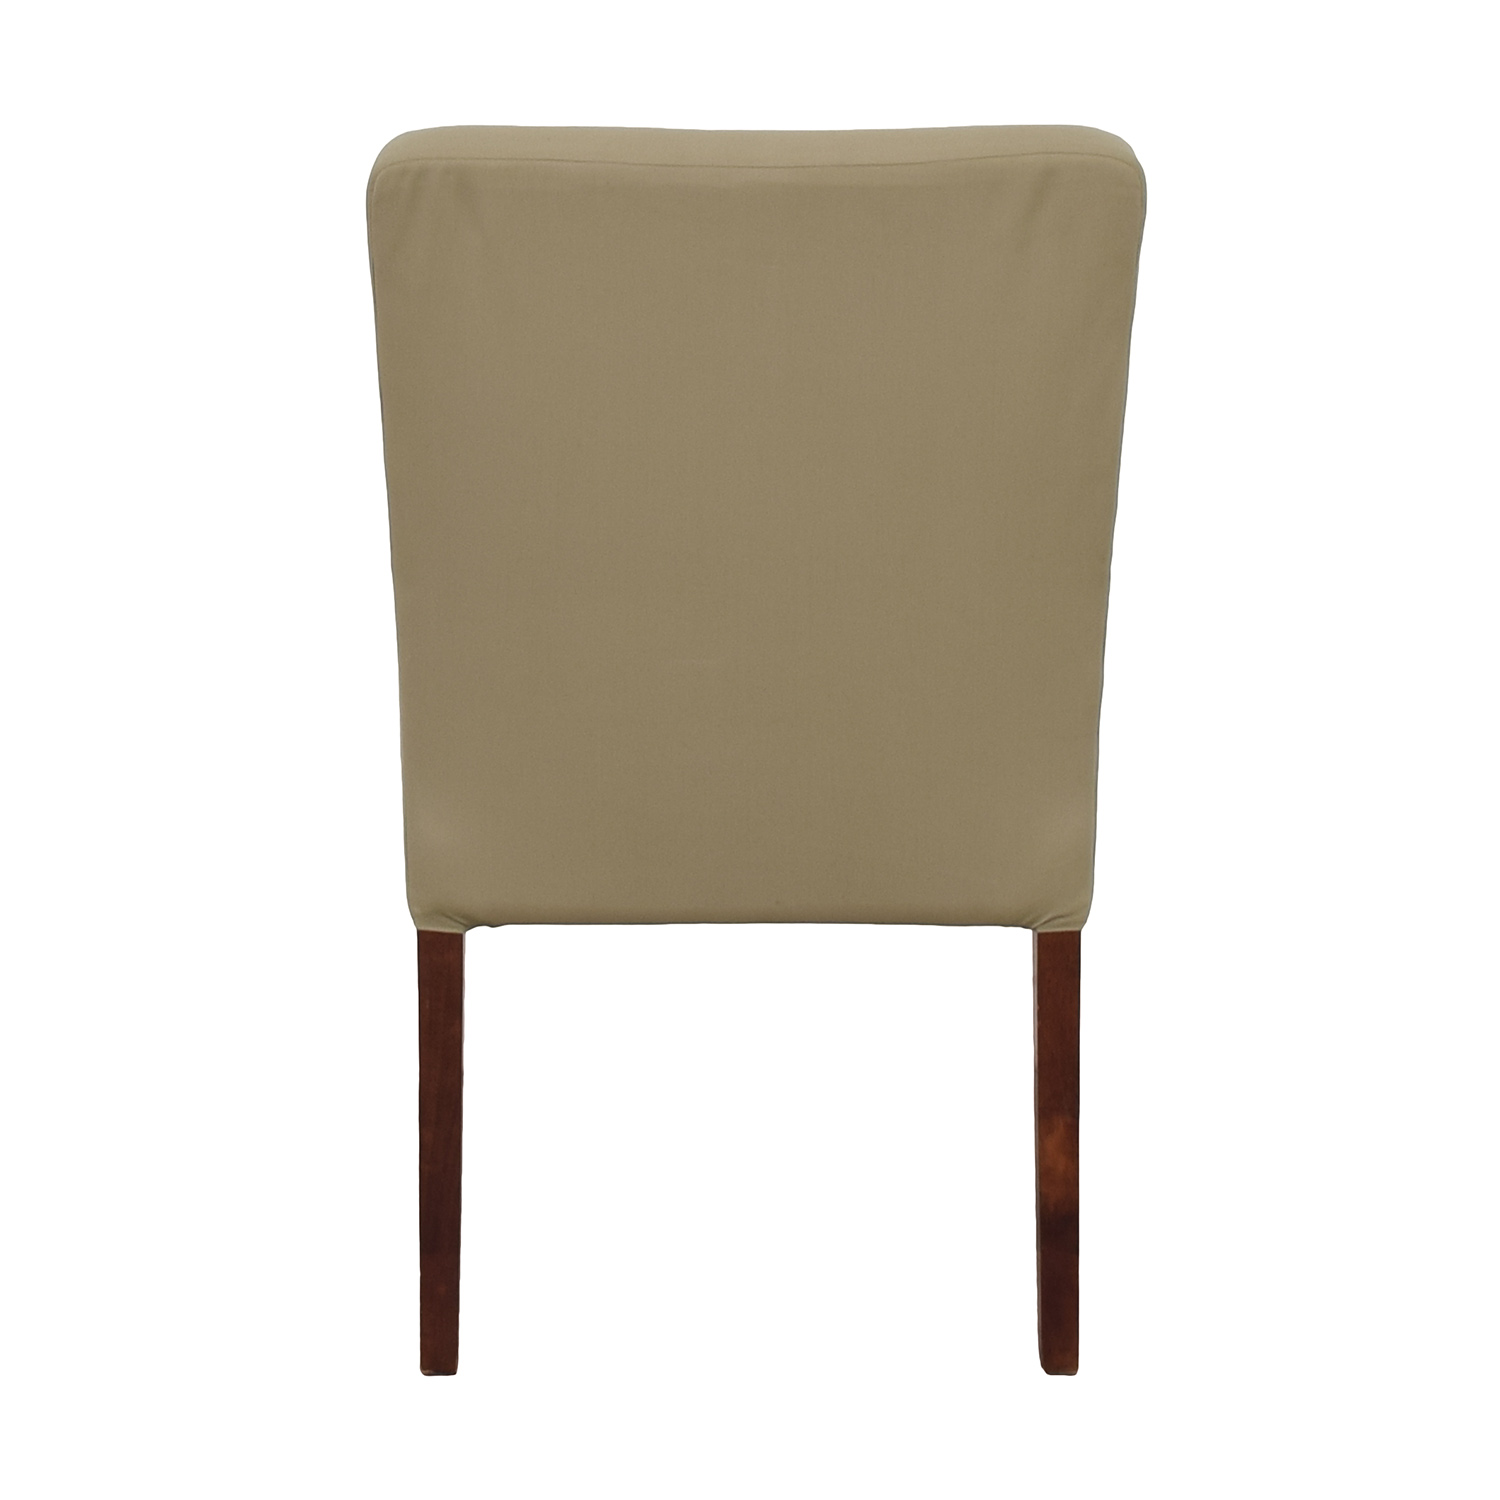 Pottery Barn Pottery Barn Megan Beige Accent Chair beige